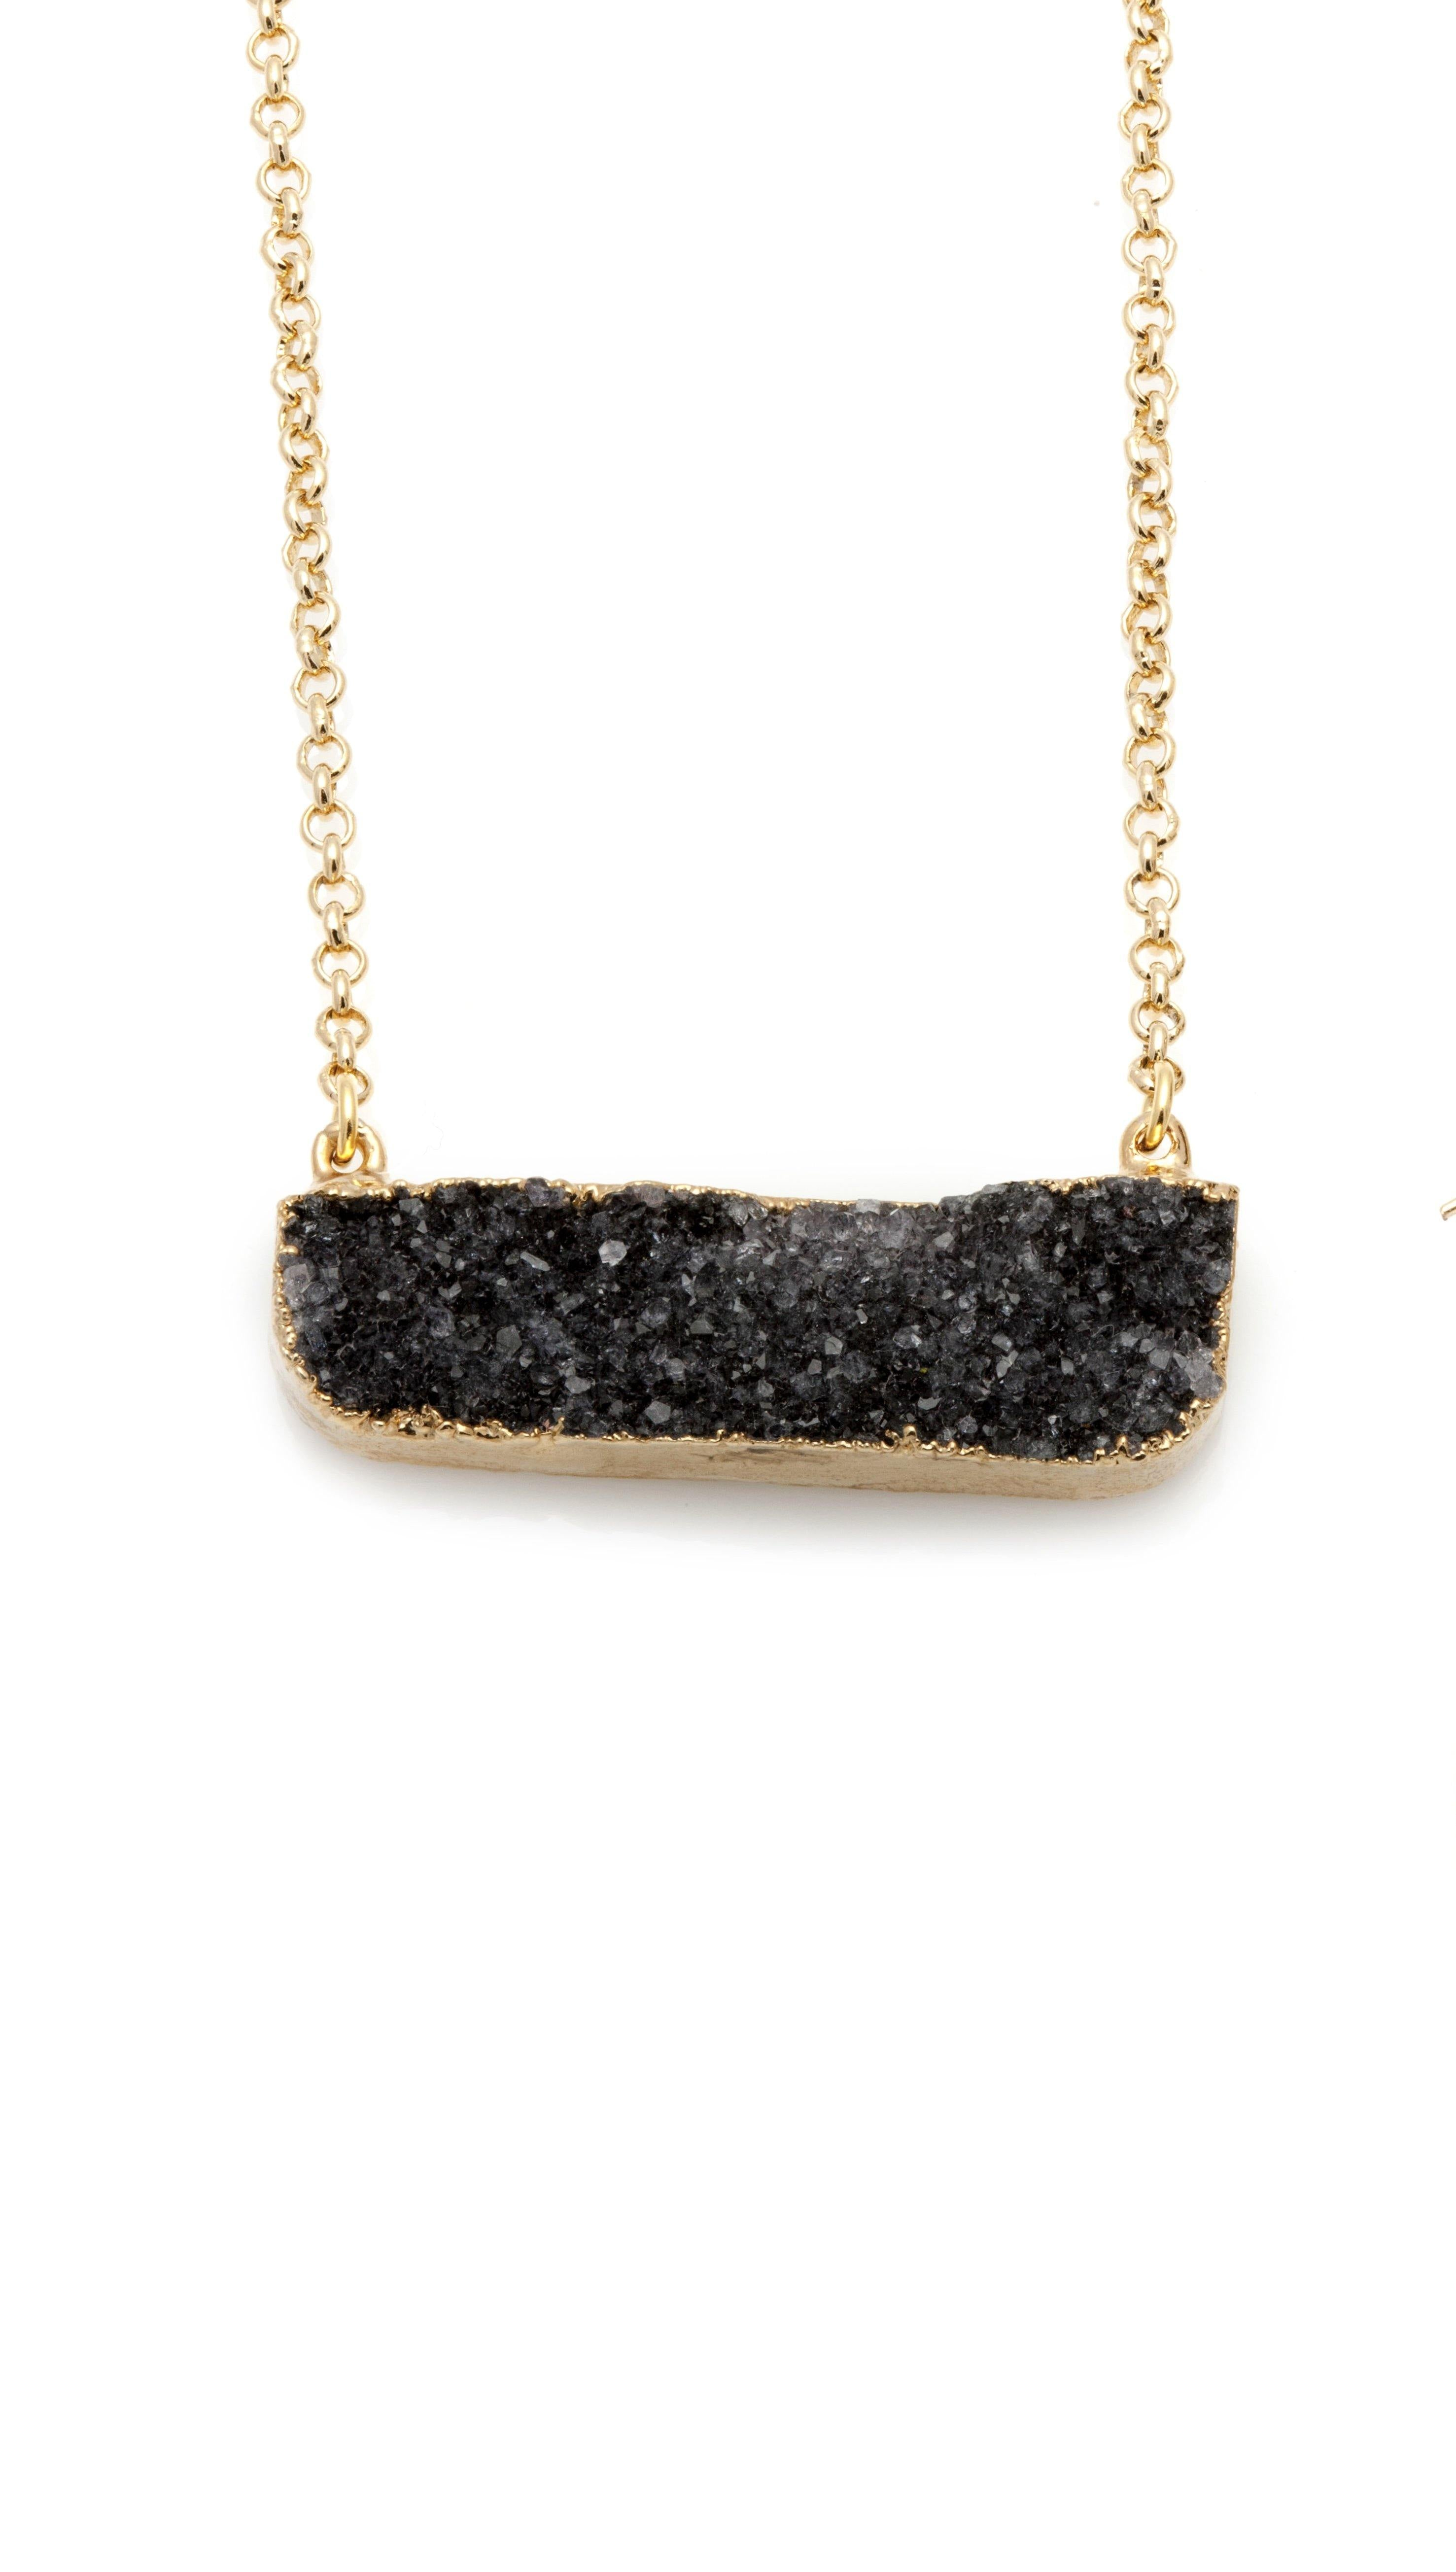 Druzy Black Agate Gold Short Necklace - Irit Sorokin Designs Canadian handmade jewelry